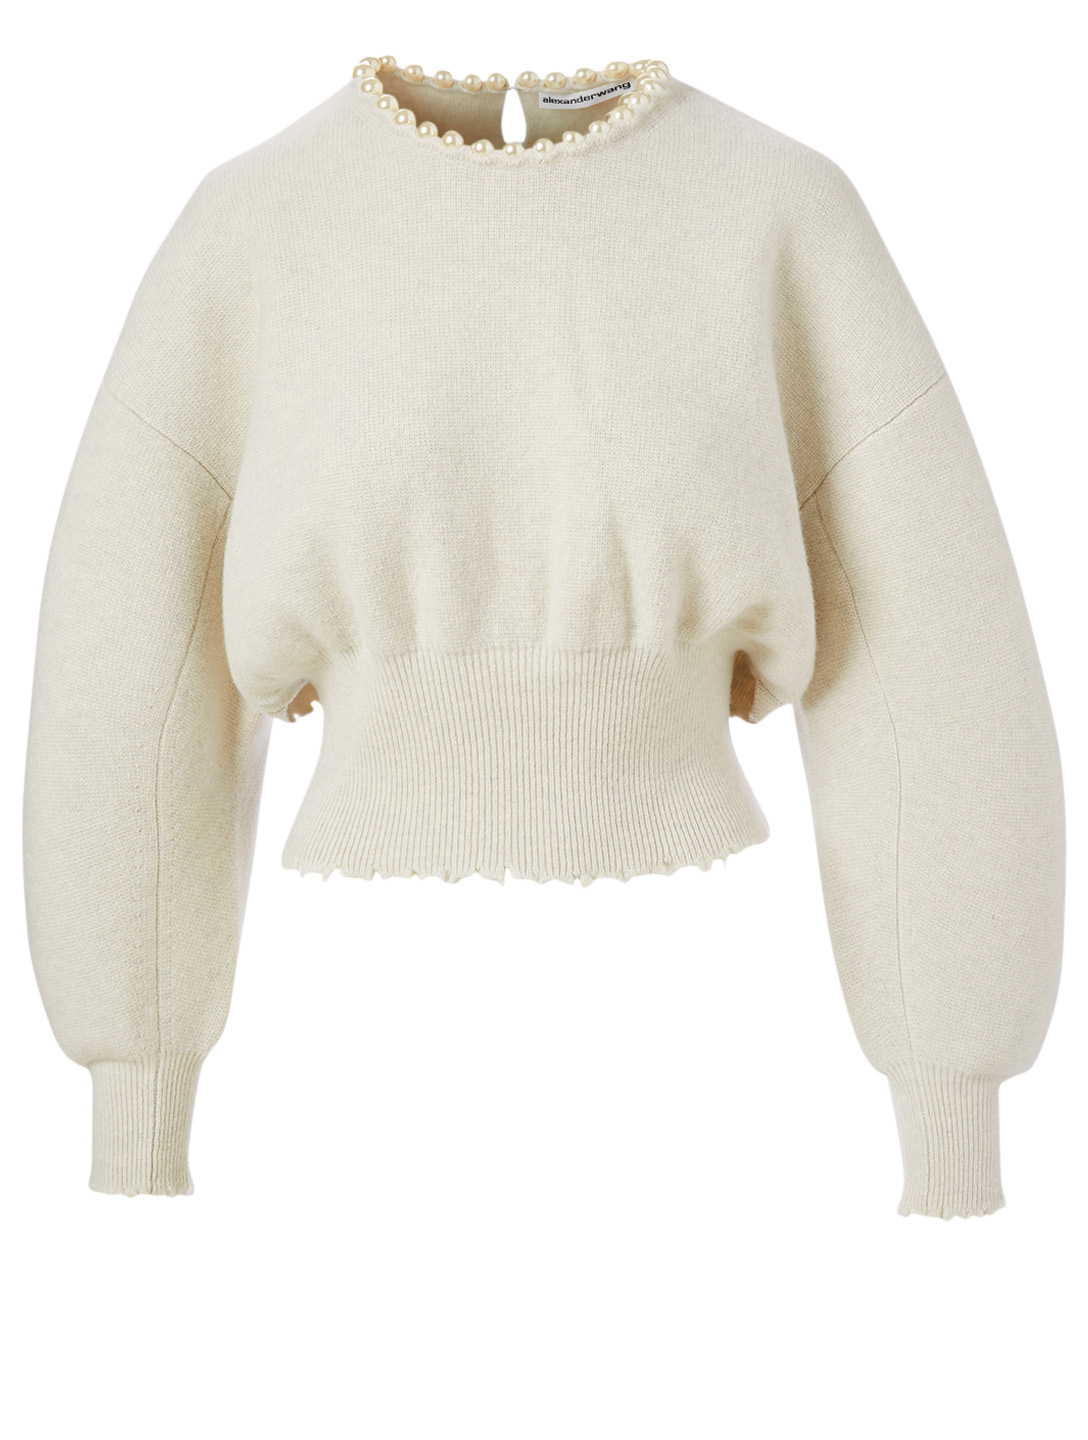 ALEXANDER WANG Wool And Cashmere Sweater With Necklace Women's White